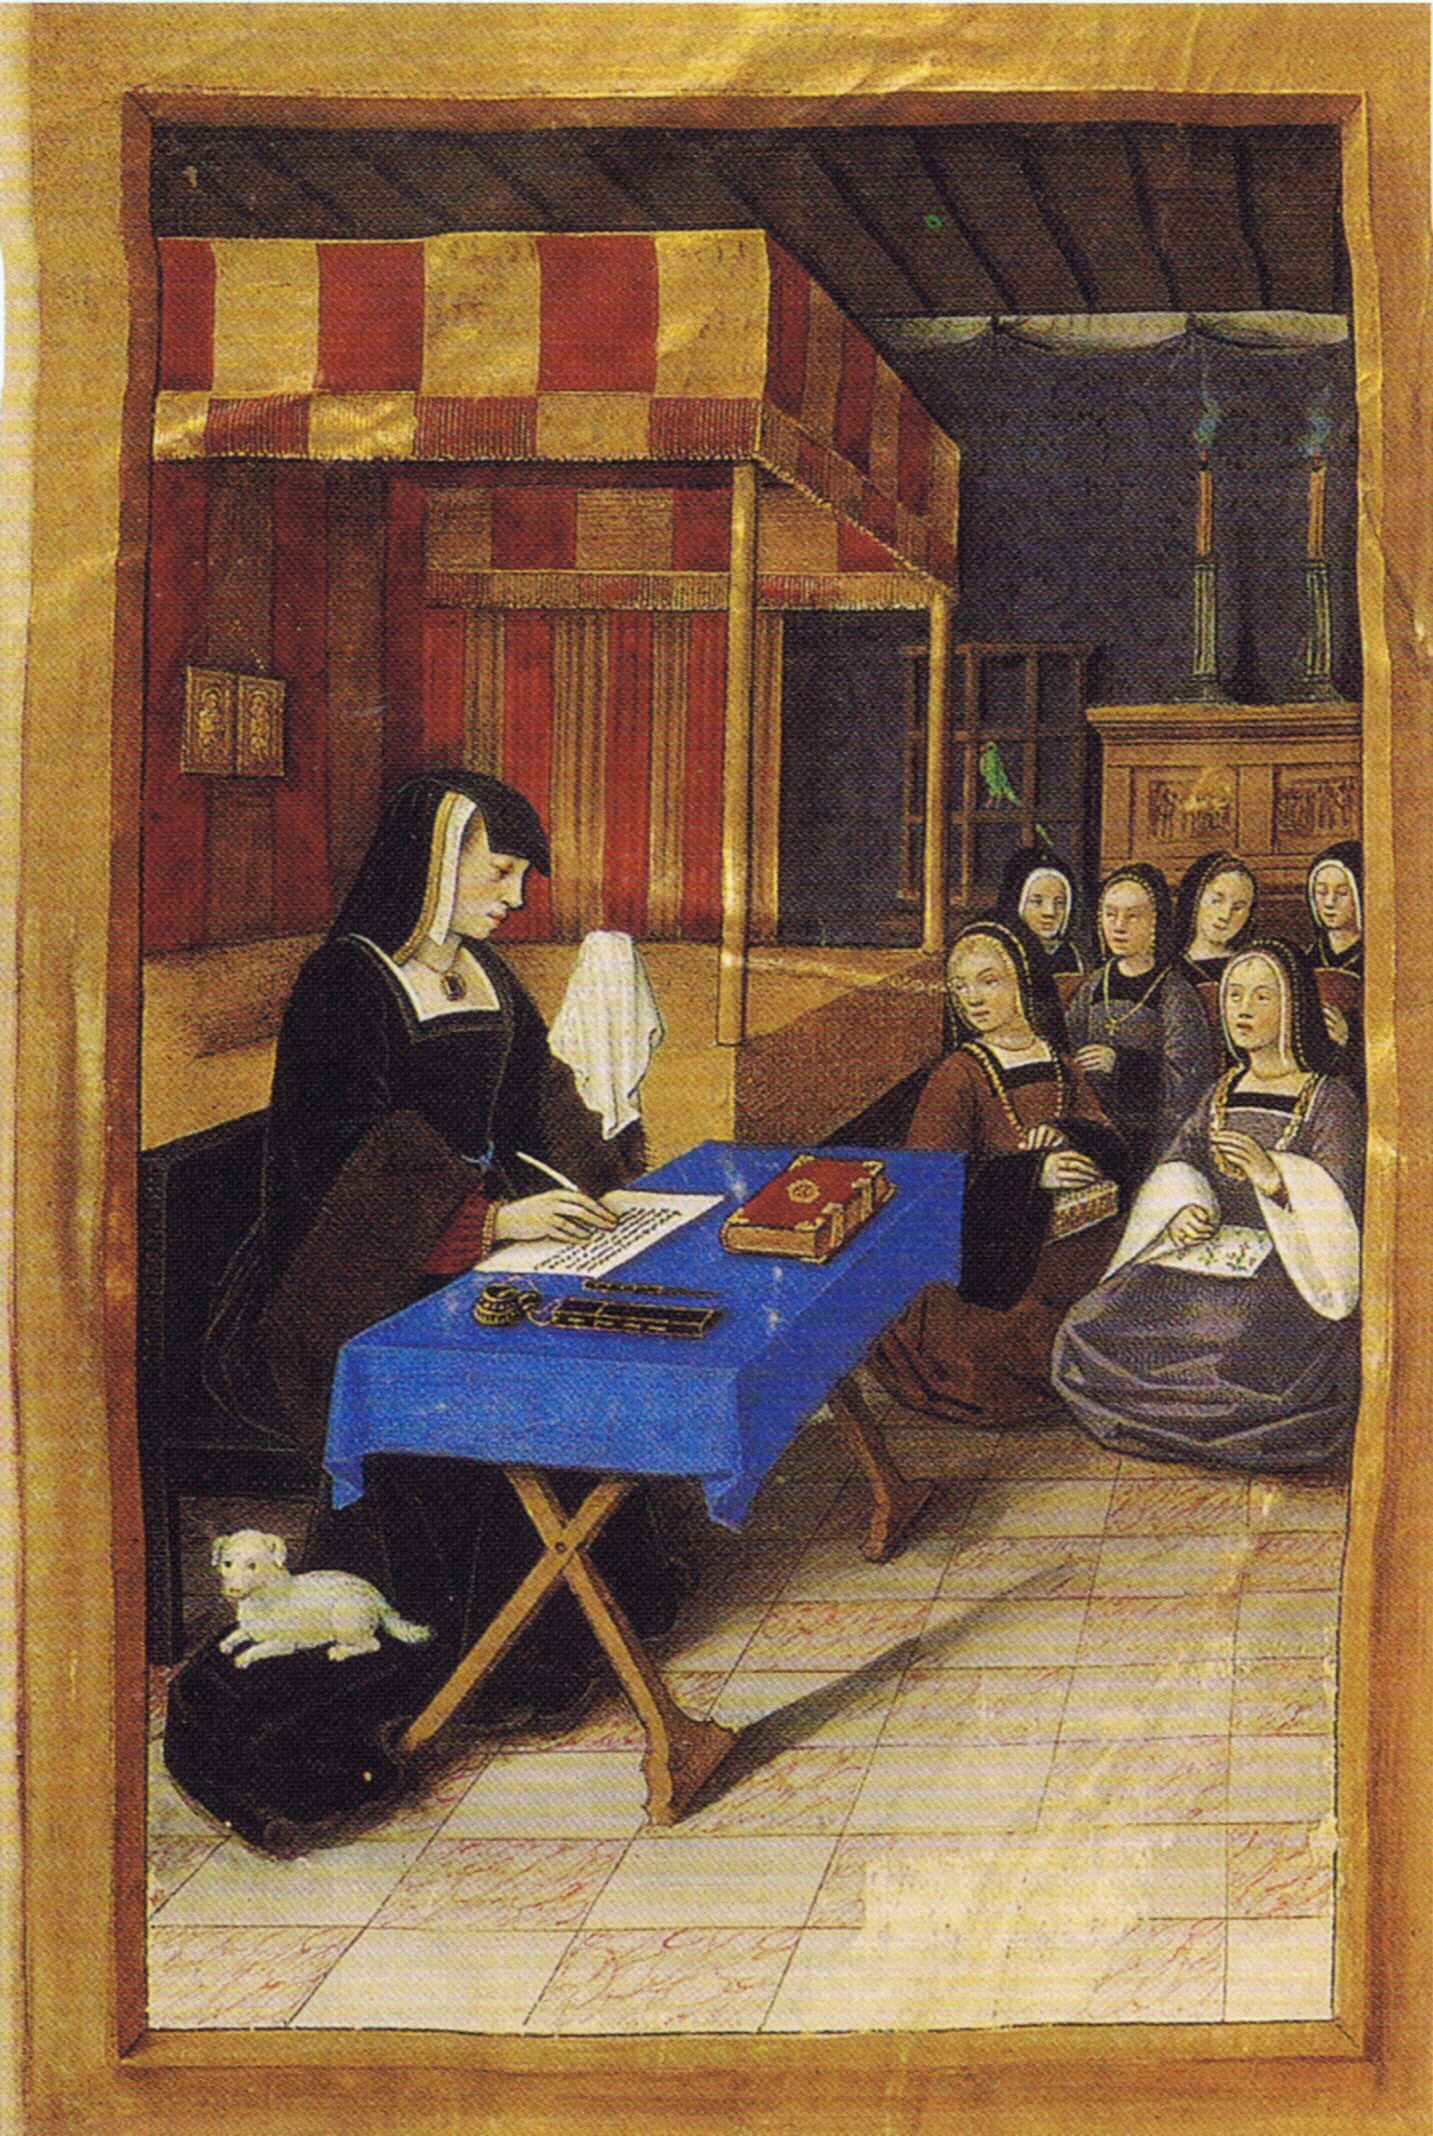 1504 (approx) - Epistres Envoyees au Roi - Fictive exchange of letters between Anne de Bretagne and Louis XII